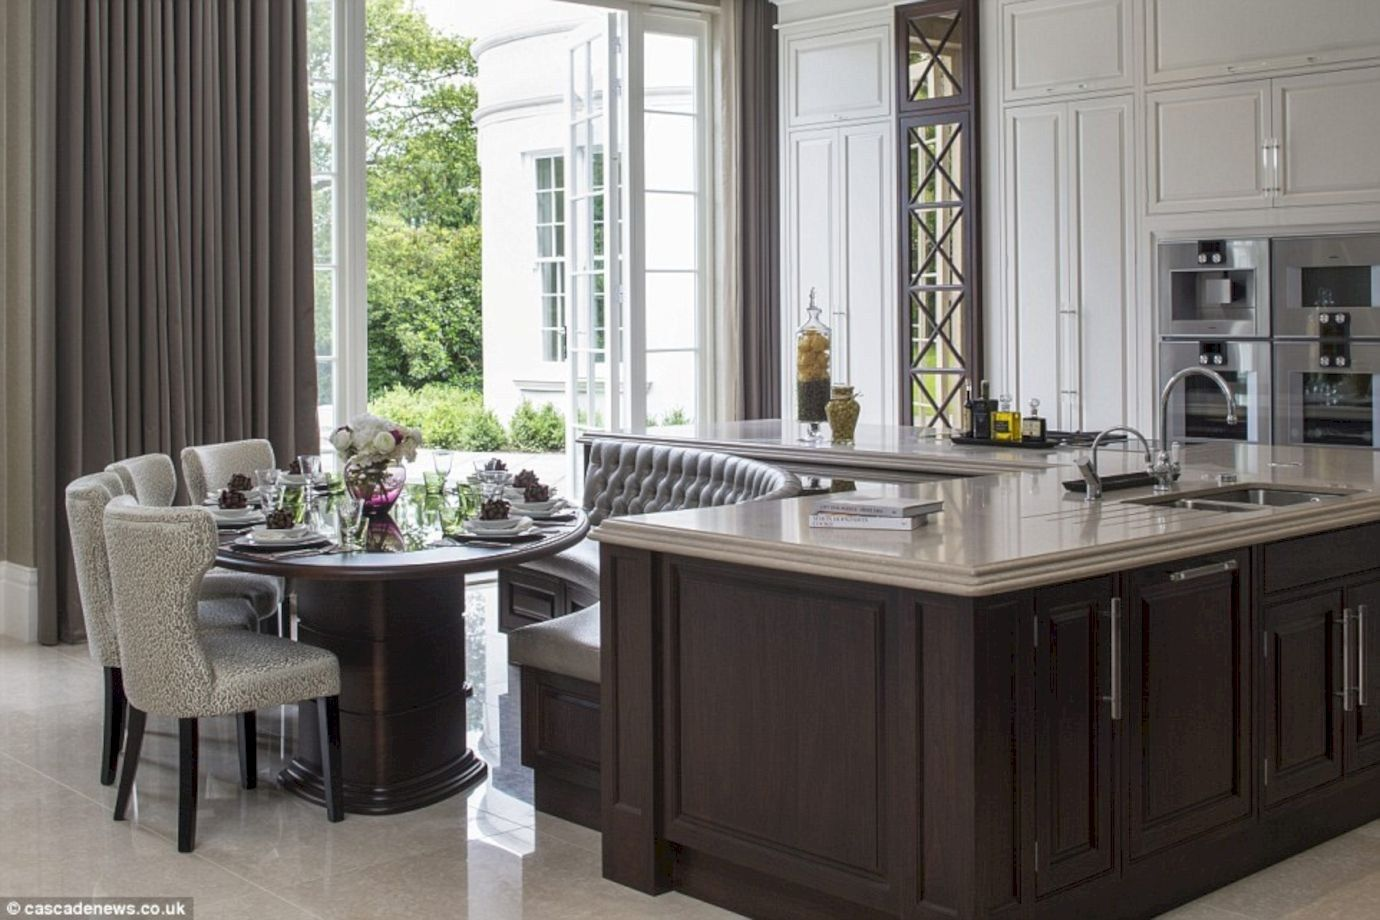 20 Inspiring Minimalist Kitchen Islands With Seating Modern Kitchen Tables Kitchen Seating Kitchen Island With Seating